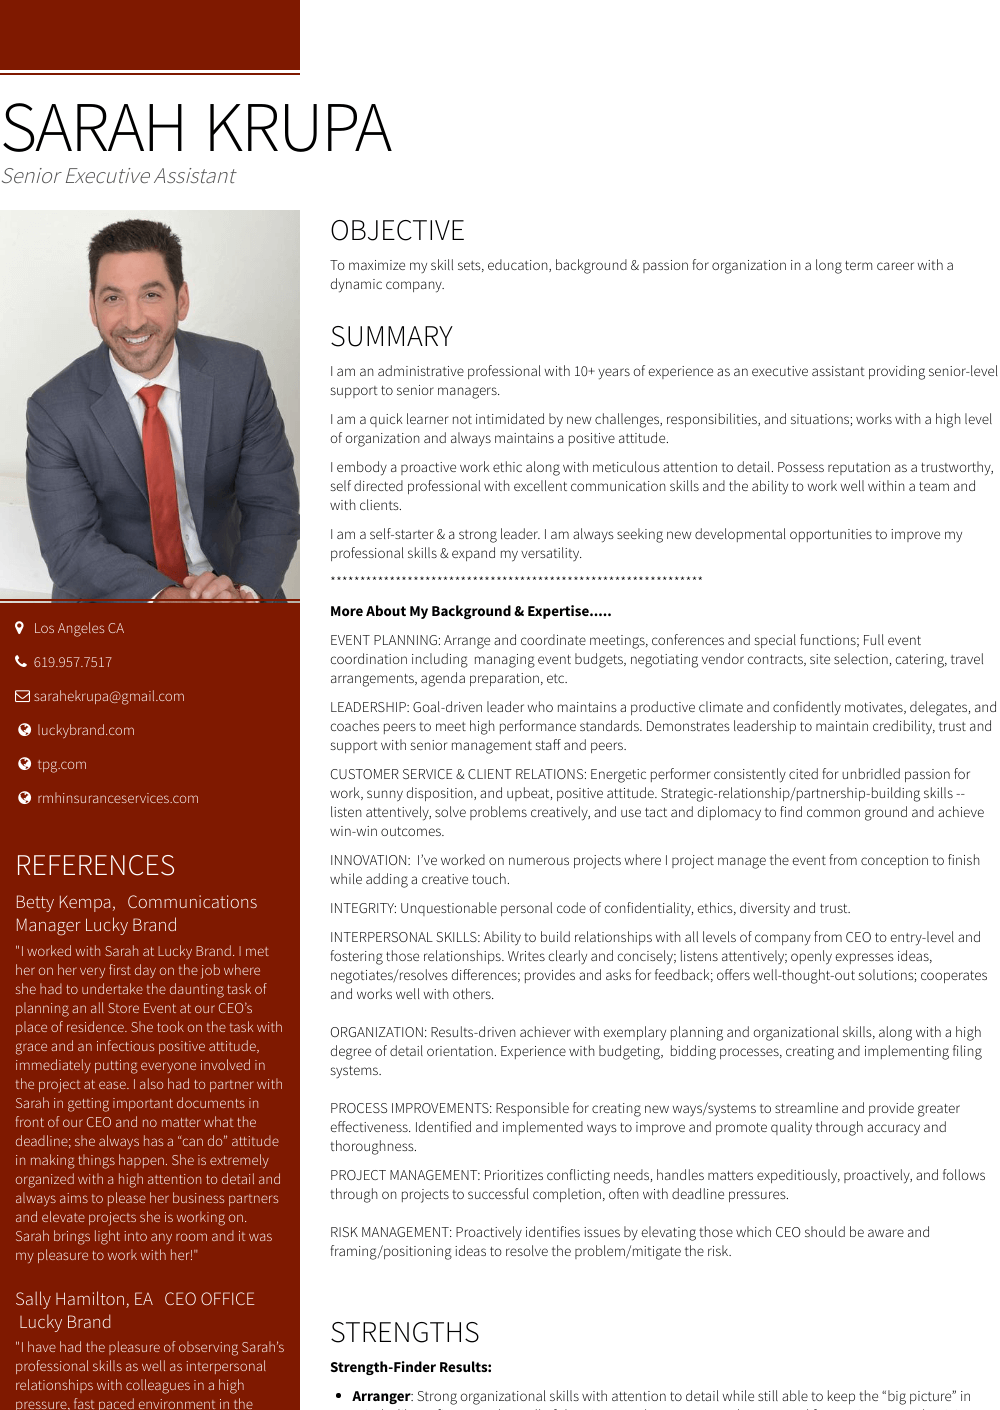 Senior Executive - Resume Samples and Templates | VisualCV